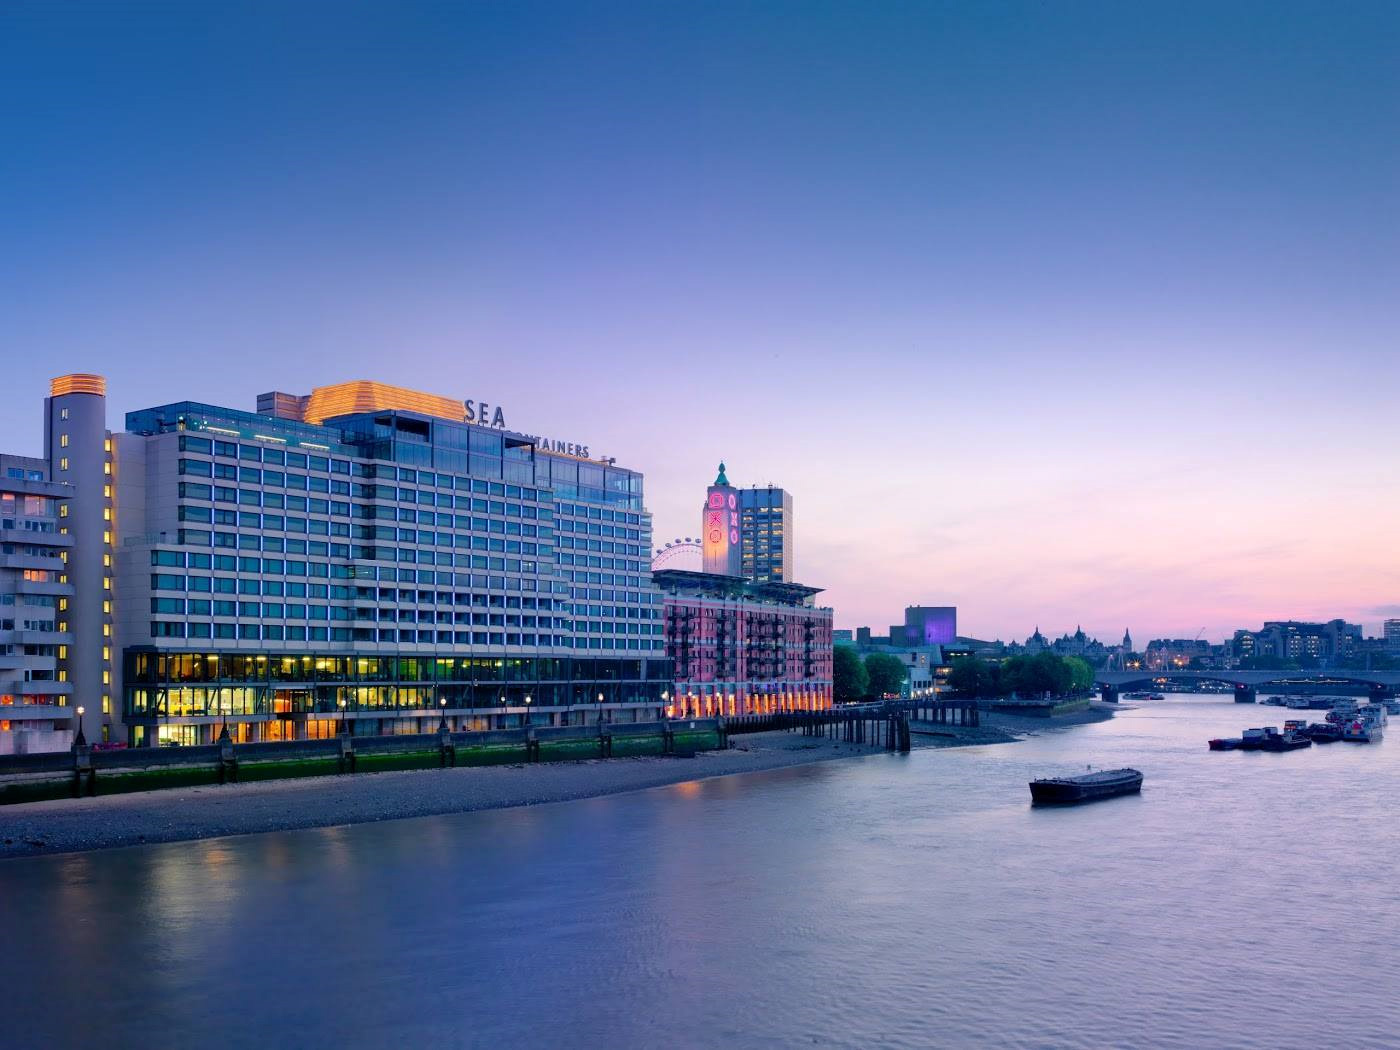 Morgans Hotel Group Opens The 359 Room Mondrian London At Sea Containers